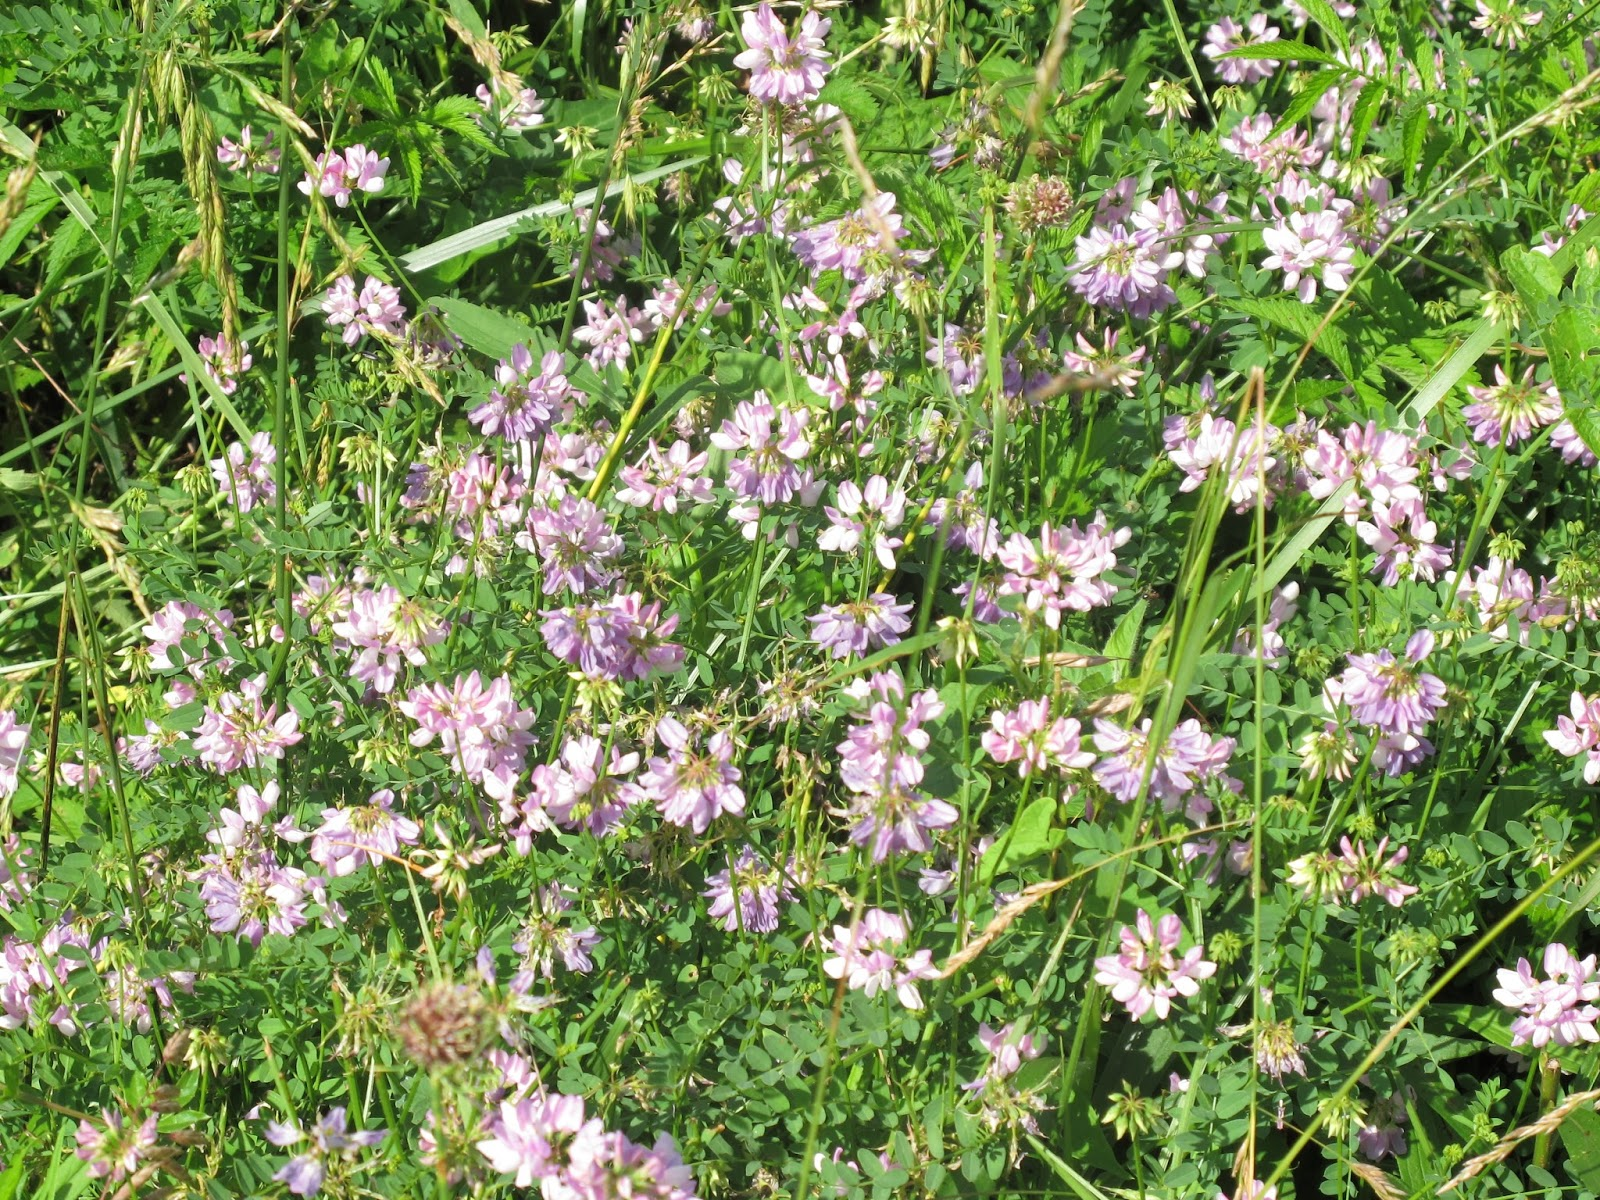 Blue jay barrens invasive control crown vetch i made an effort this year to seek out and spray colonies of the invasive crown vetch for several years now ive been finding random clumps of this izmirmasajfo